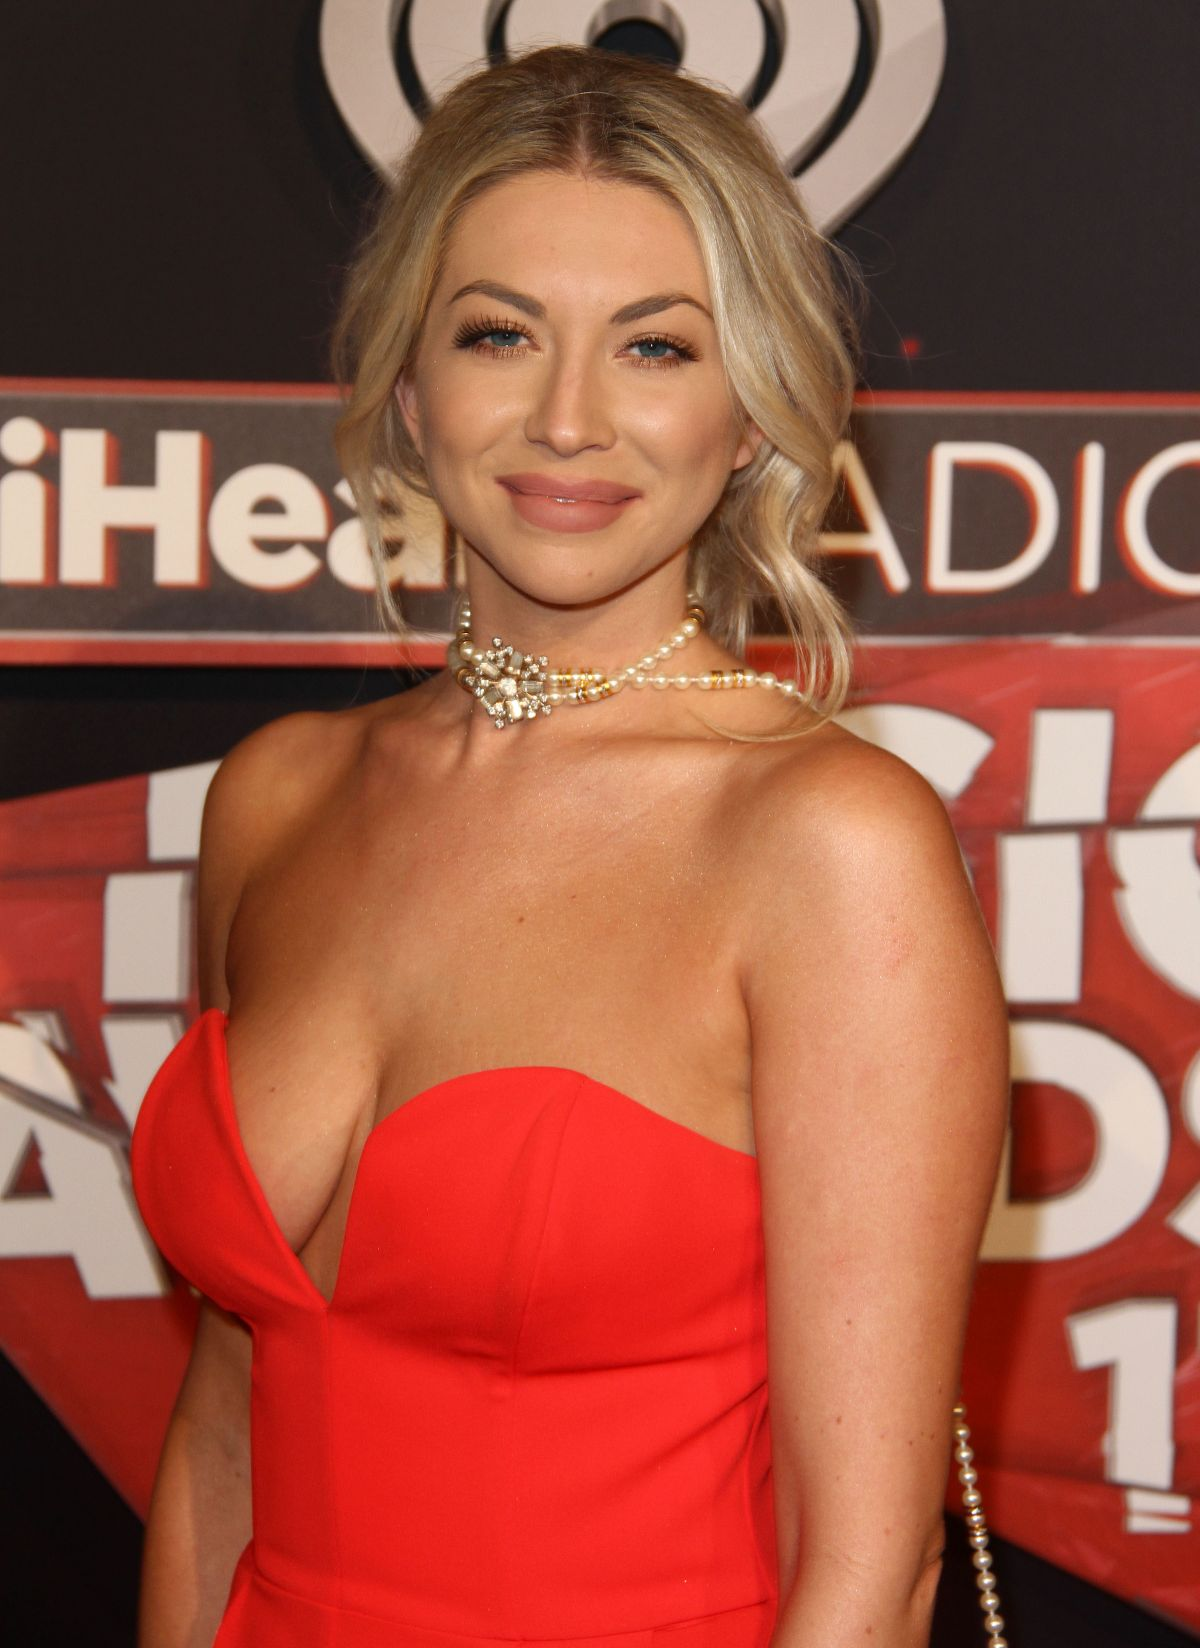 STASSI SCHROEDER at 2017 iHeartRadio Music Awards in Los Angeles 03/05/2017